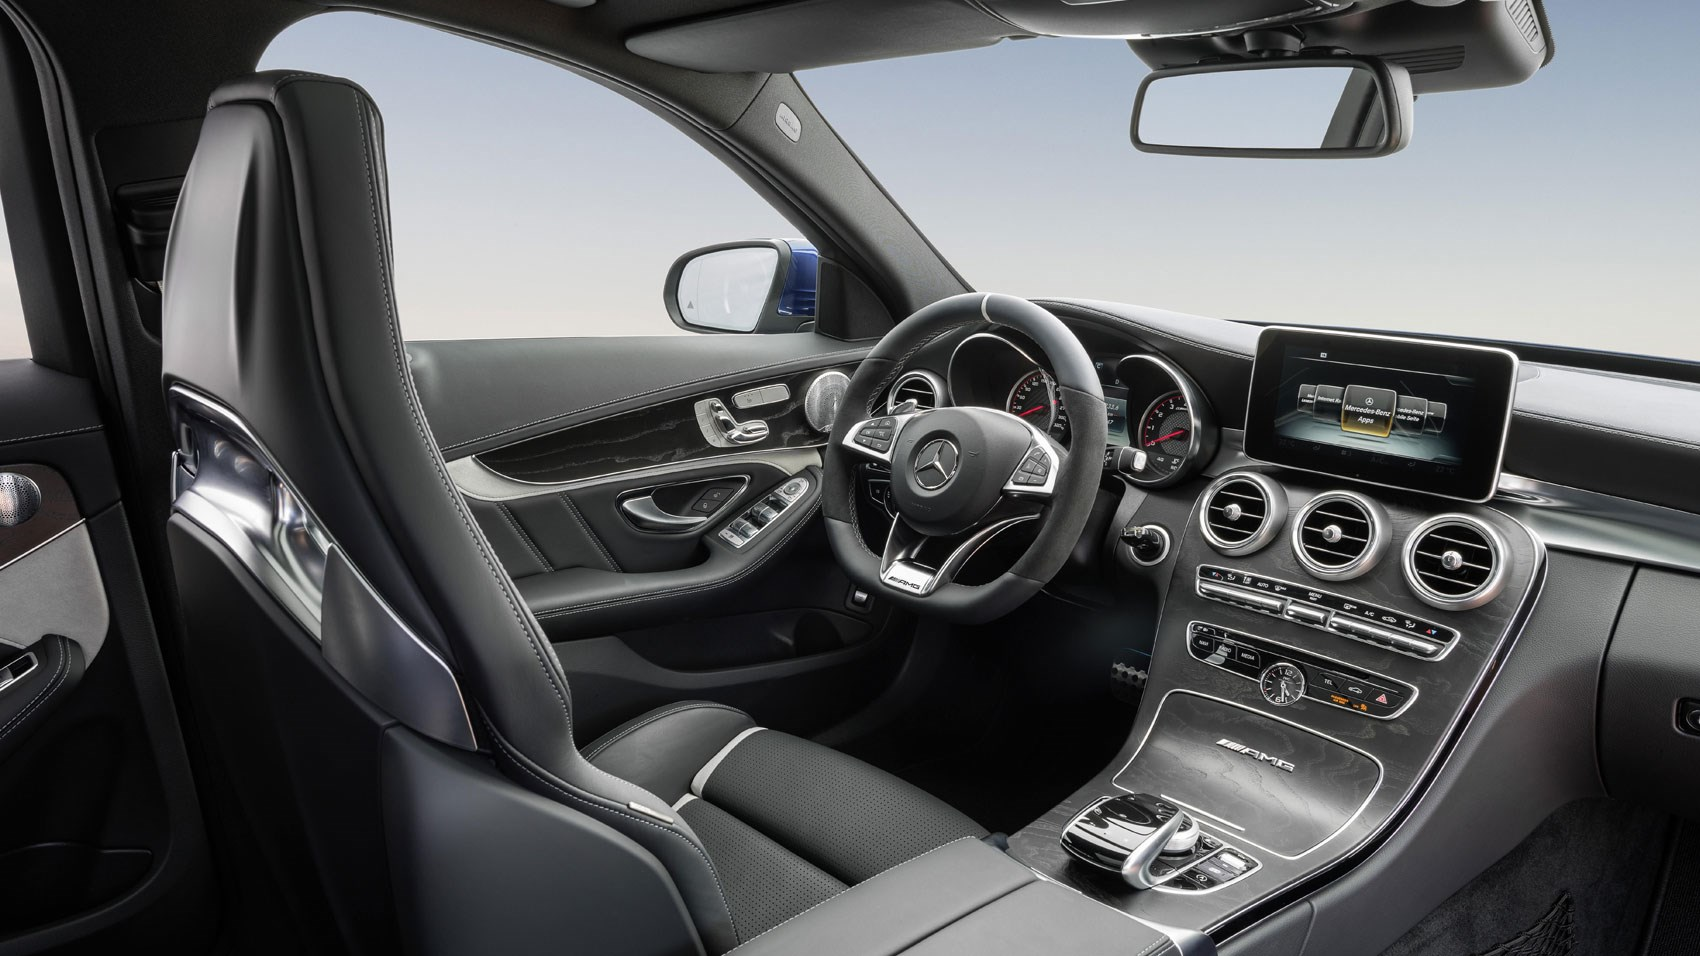 Mercedes amg c63 s estate 2016 review by car magazine 2016 mercedes amg c63 s estate review sciox Gallery